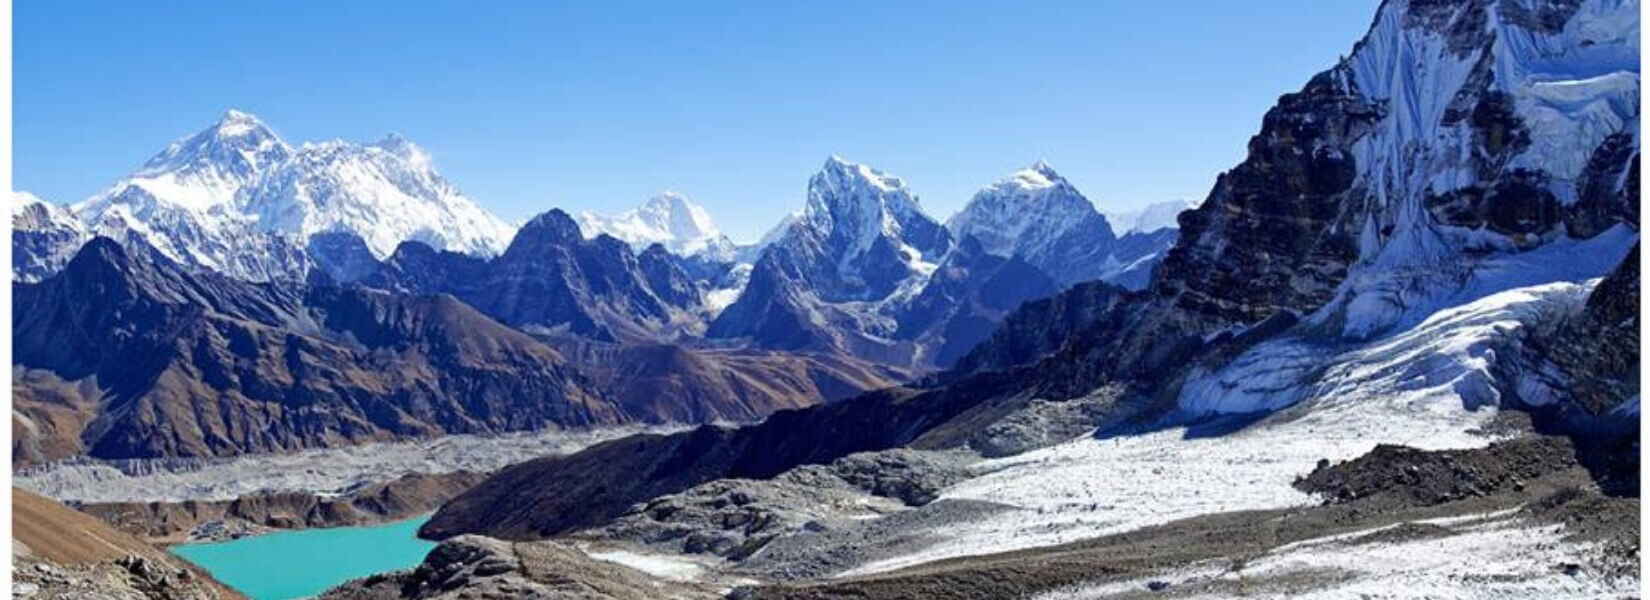 Everest Base Camp Trek details